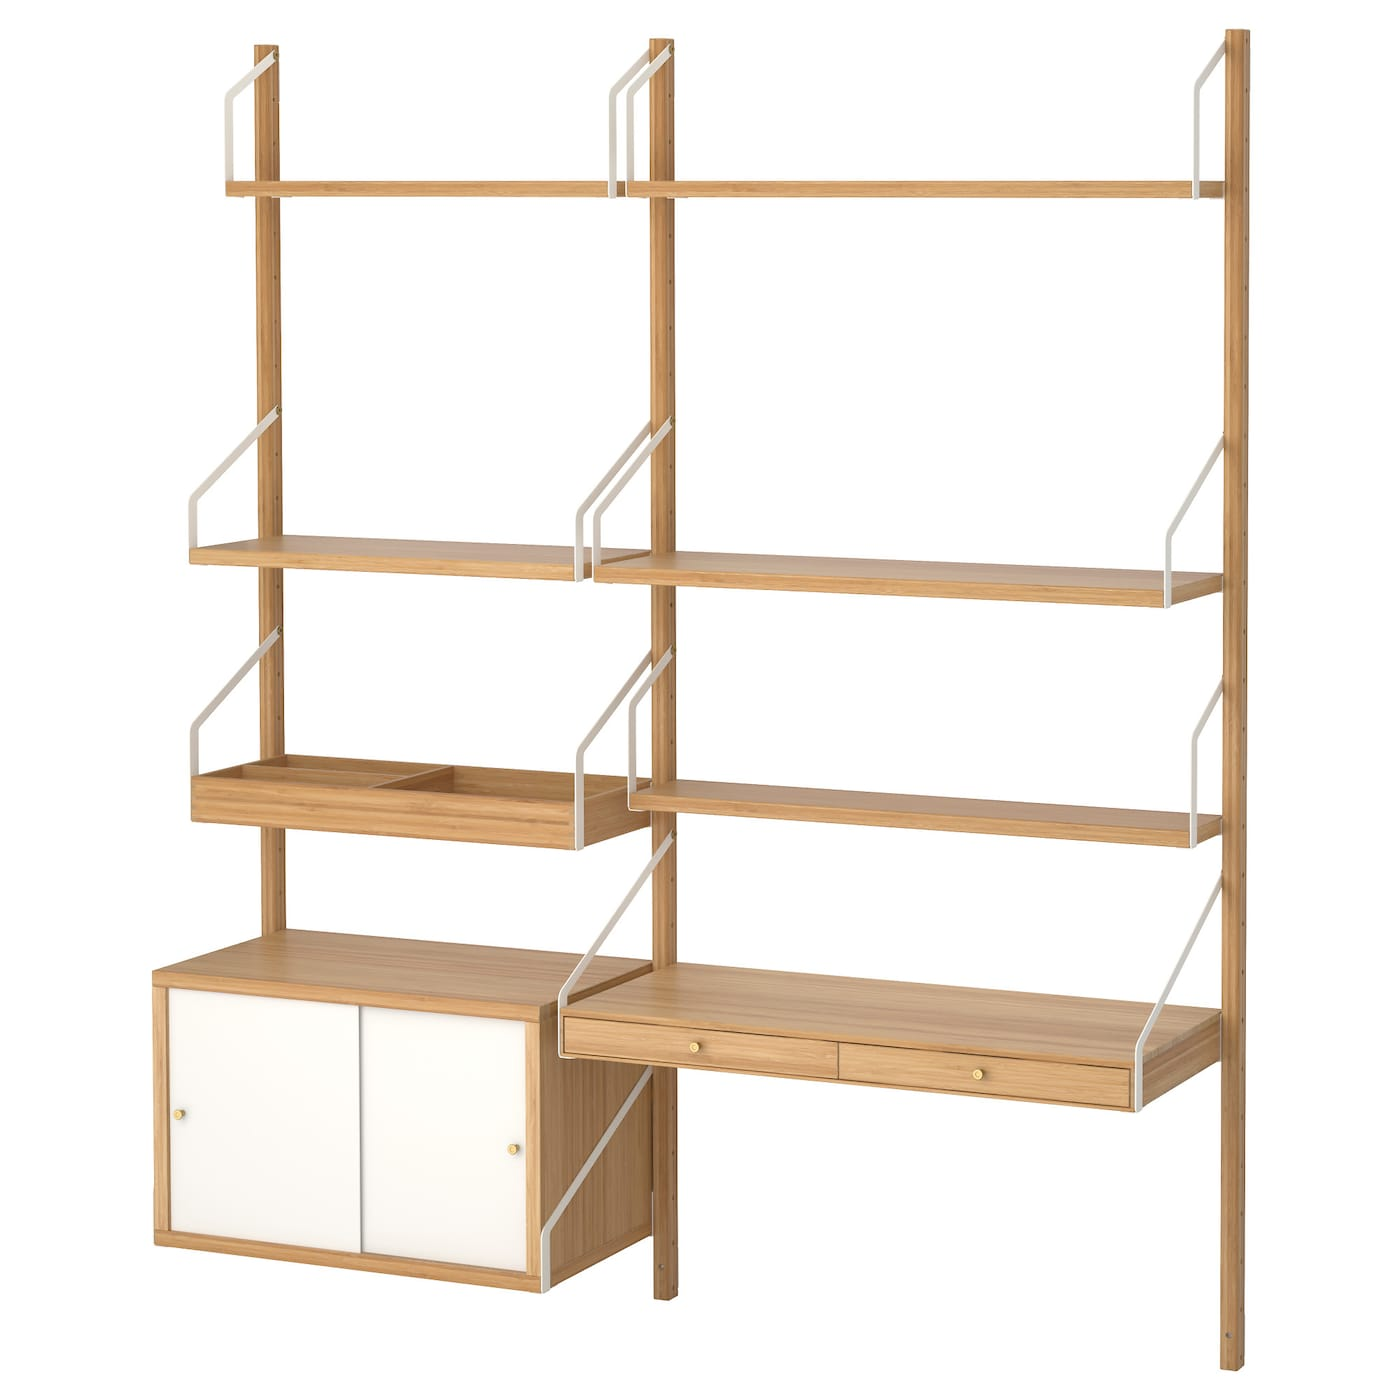 Ikea Kitchen Wall Storage: Shelving Systems